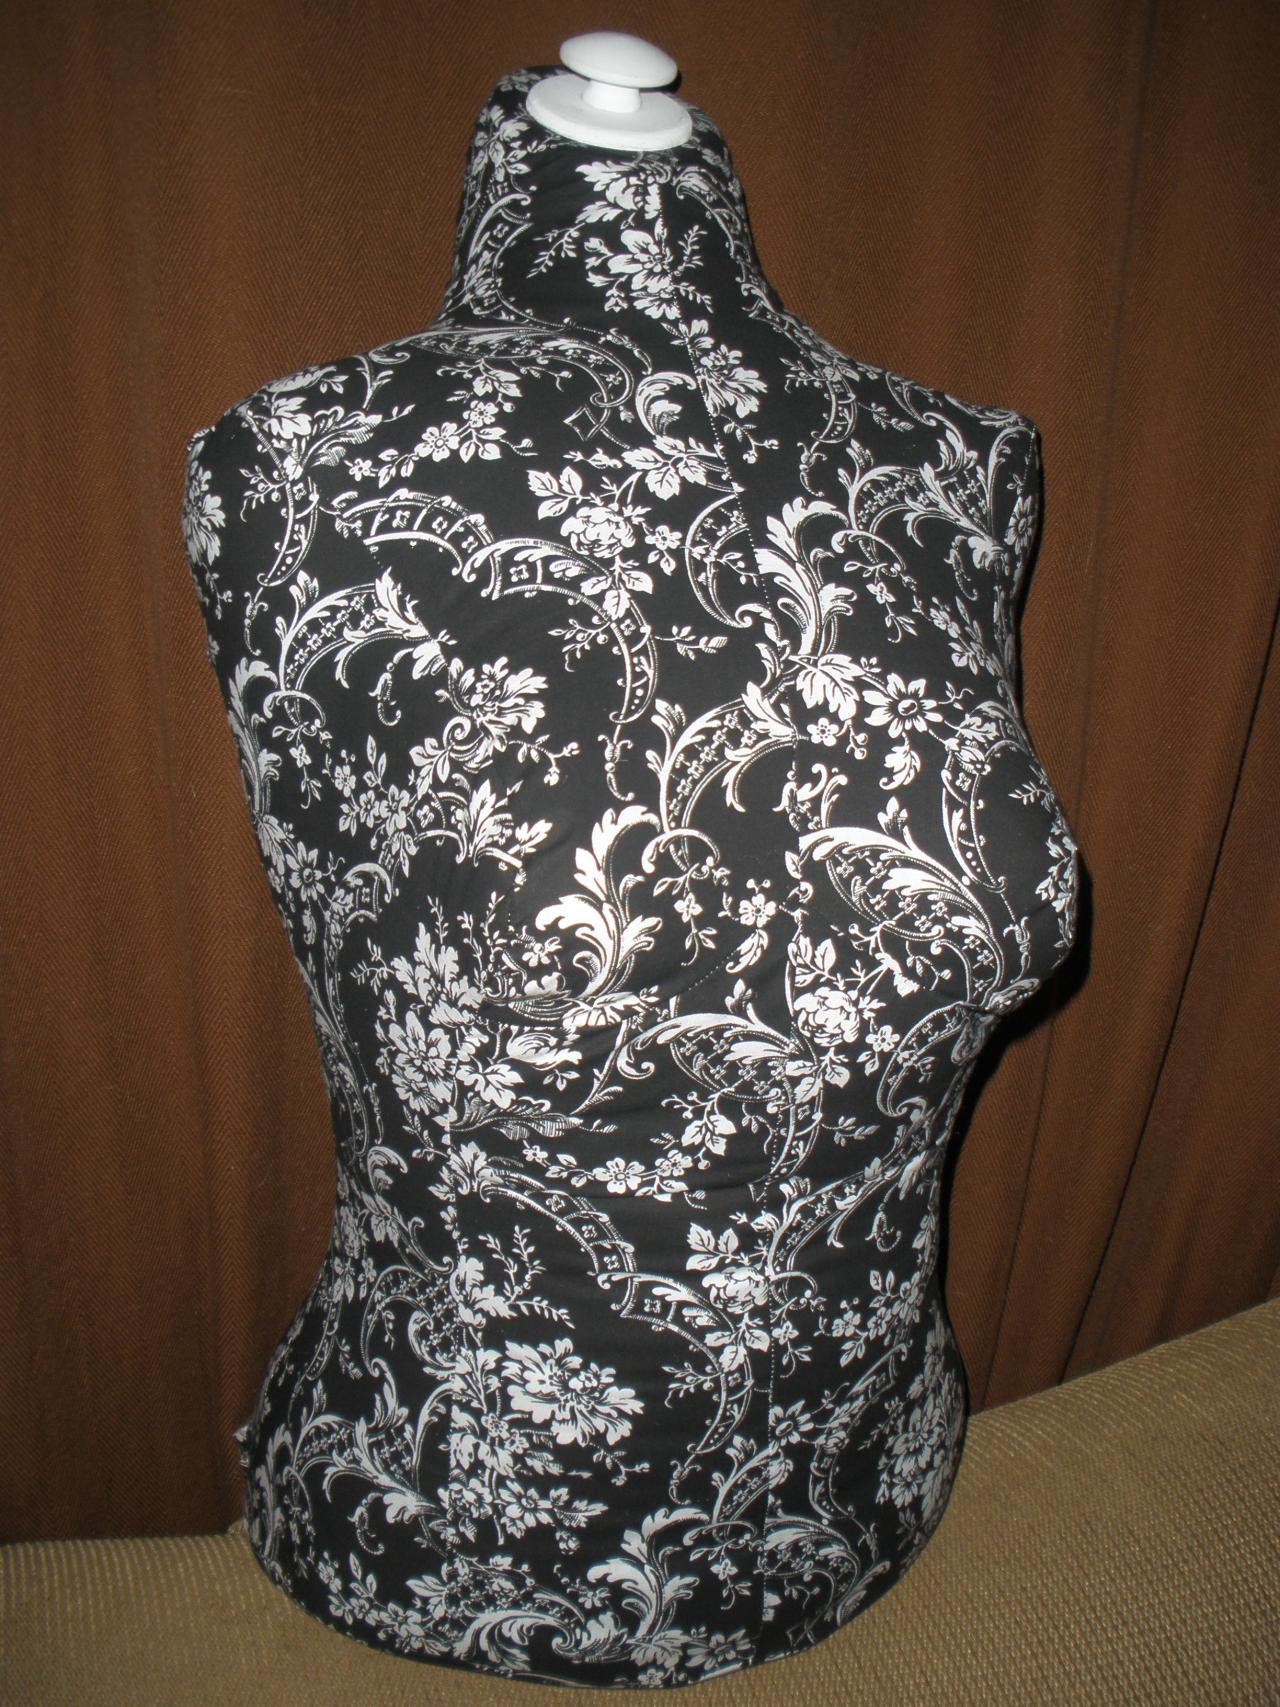 Boutique Dress form designs with stand. Life size torso great for store front or home decor inspired by Pottery Barn. Black and White Damask print.